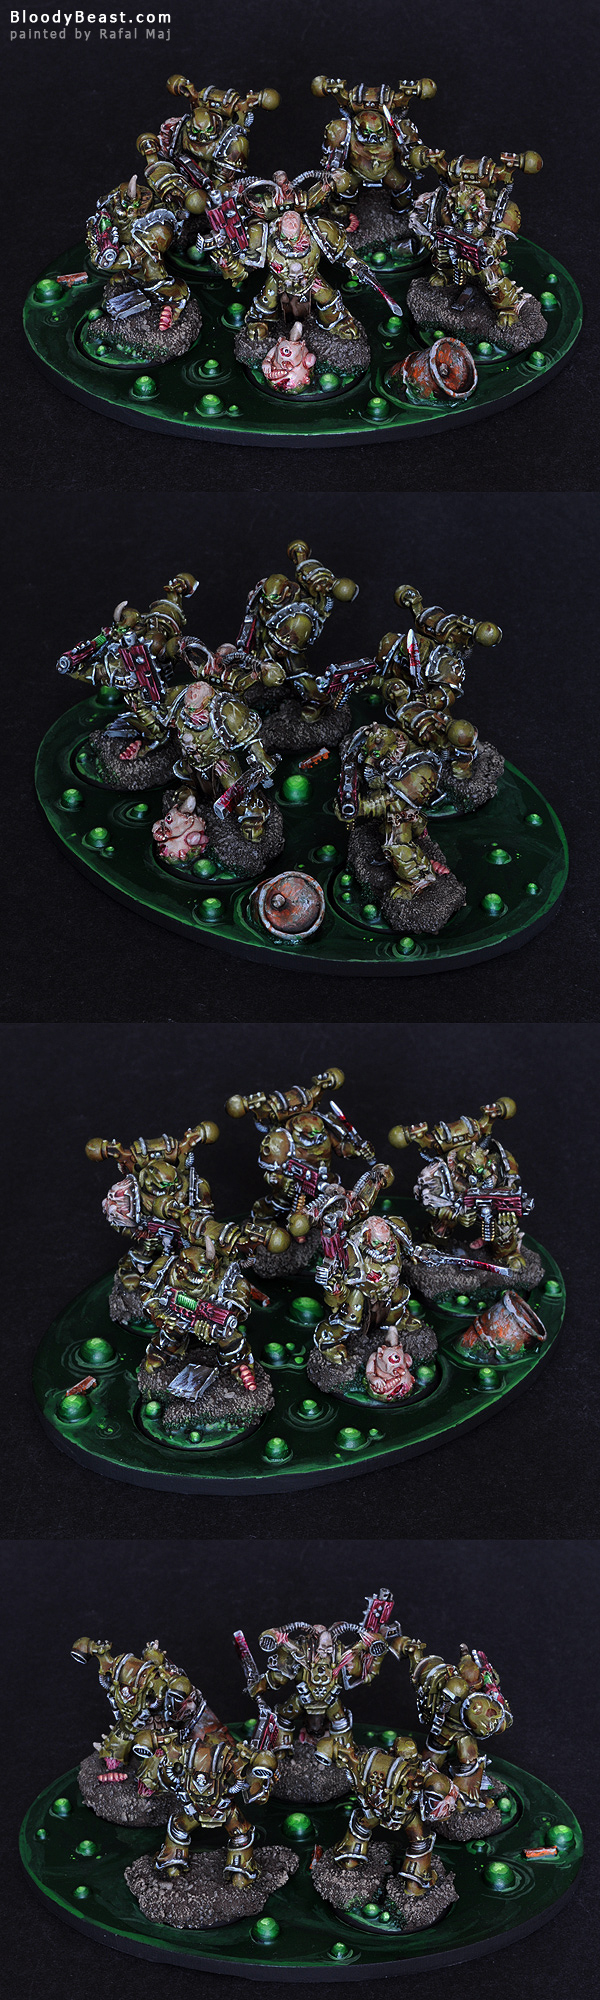 Chaos Space Marines Plague Marines painted by Rafal Maj (BloodyBeast.com)